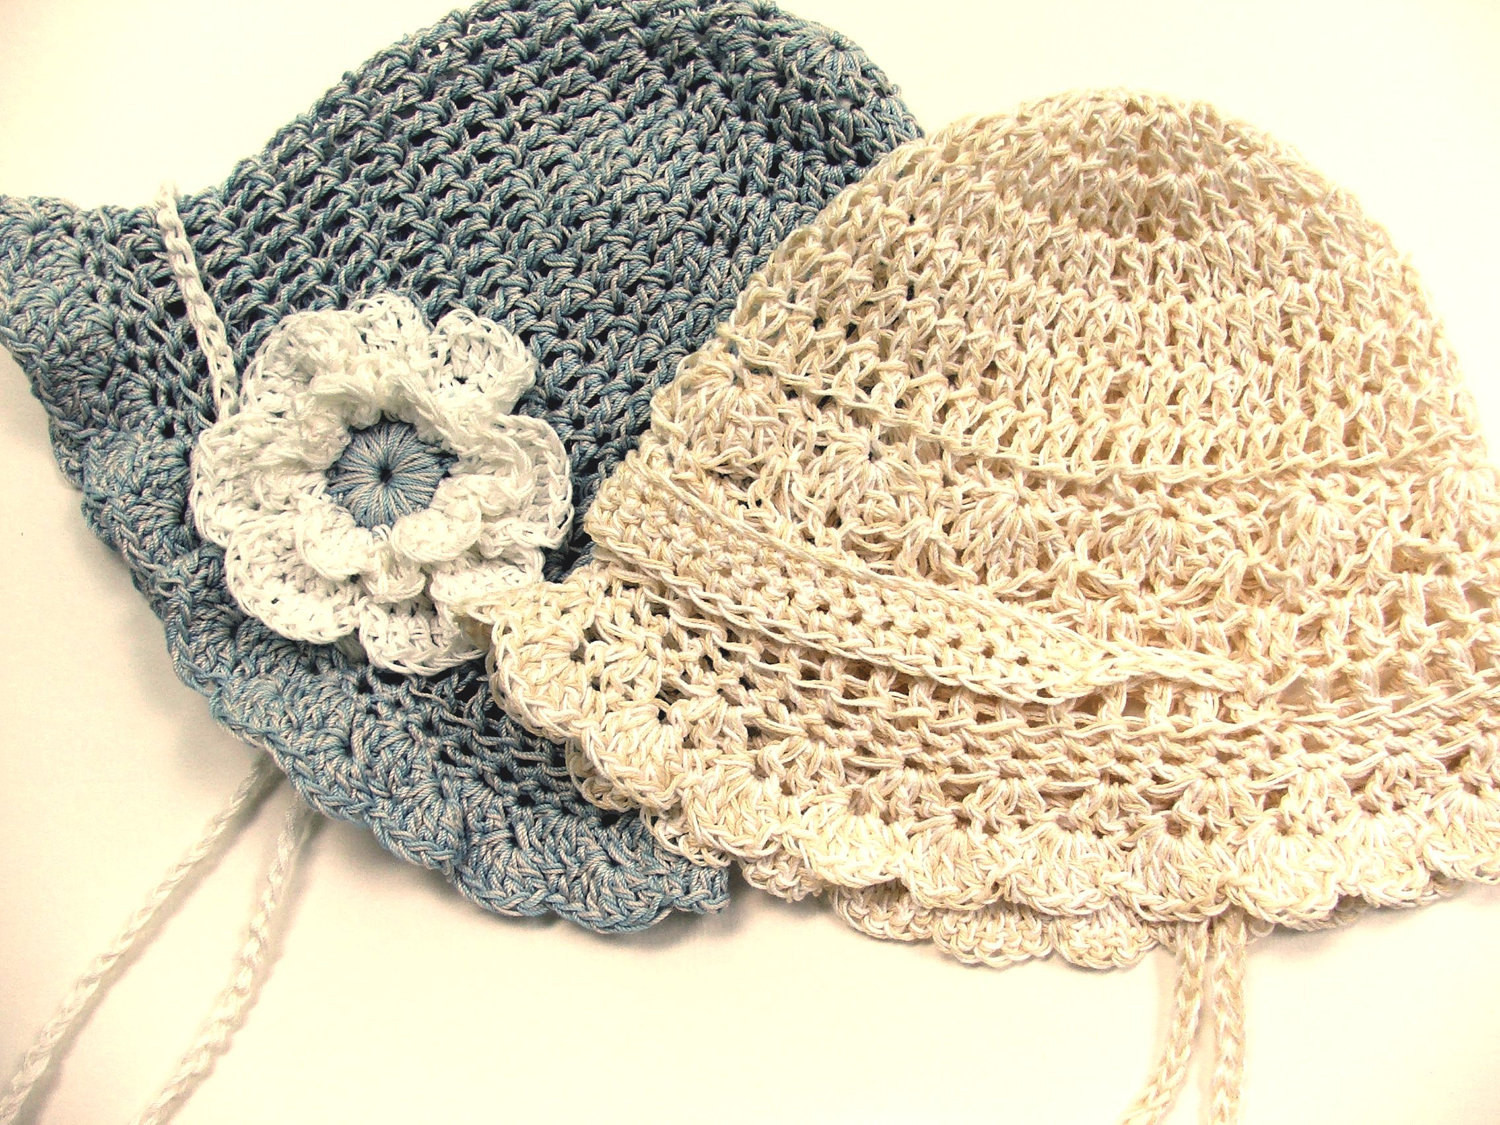 Crochet Thread Awesome Crochet Baby Hat Pattern Easy and Summery Thread Crochet Of Innovative 49 Images Crochet Thread